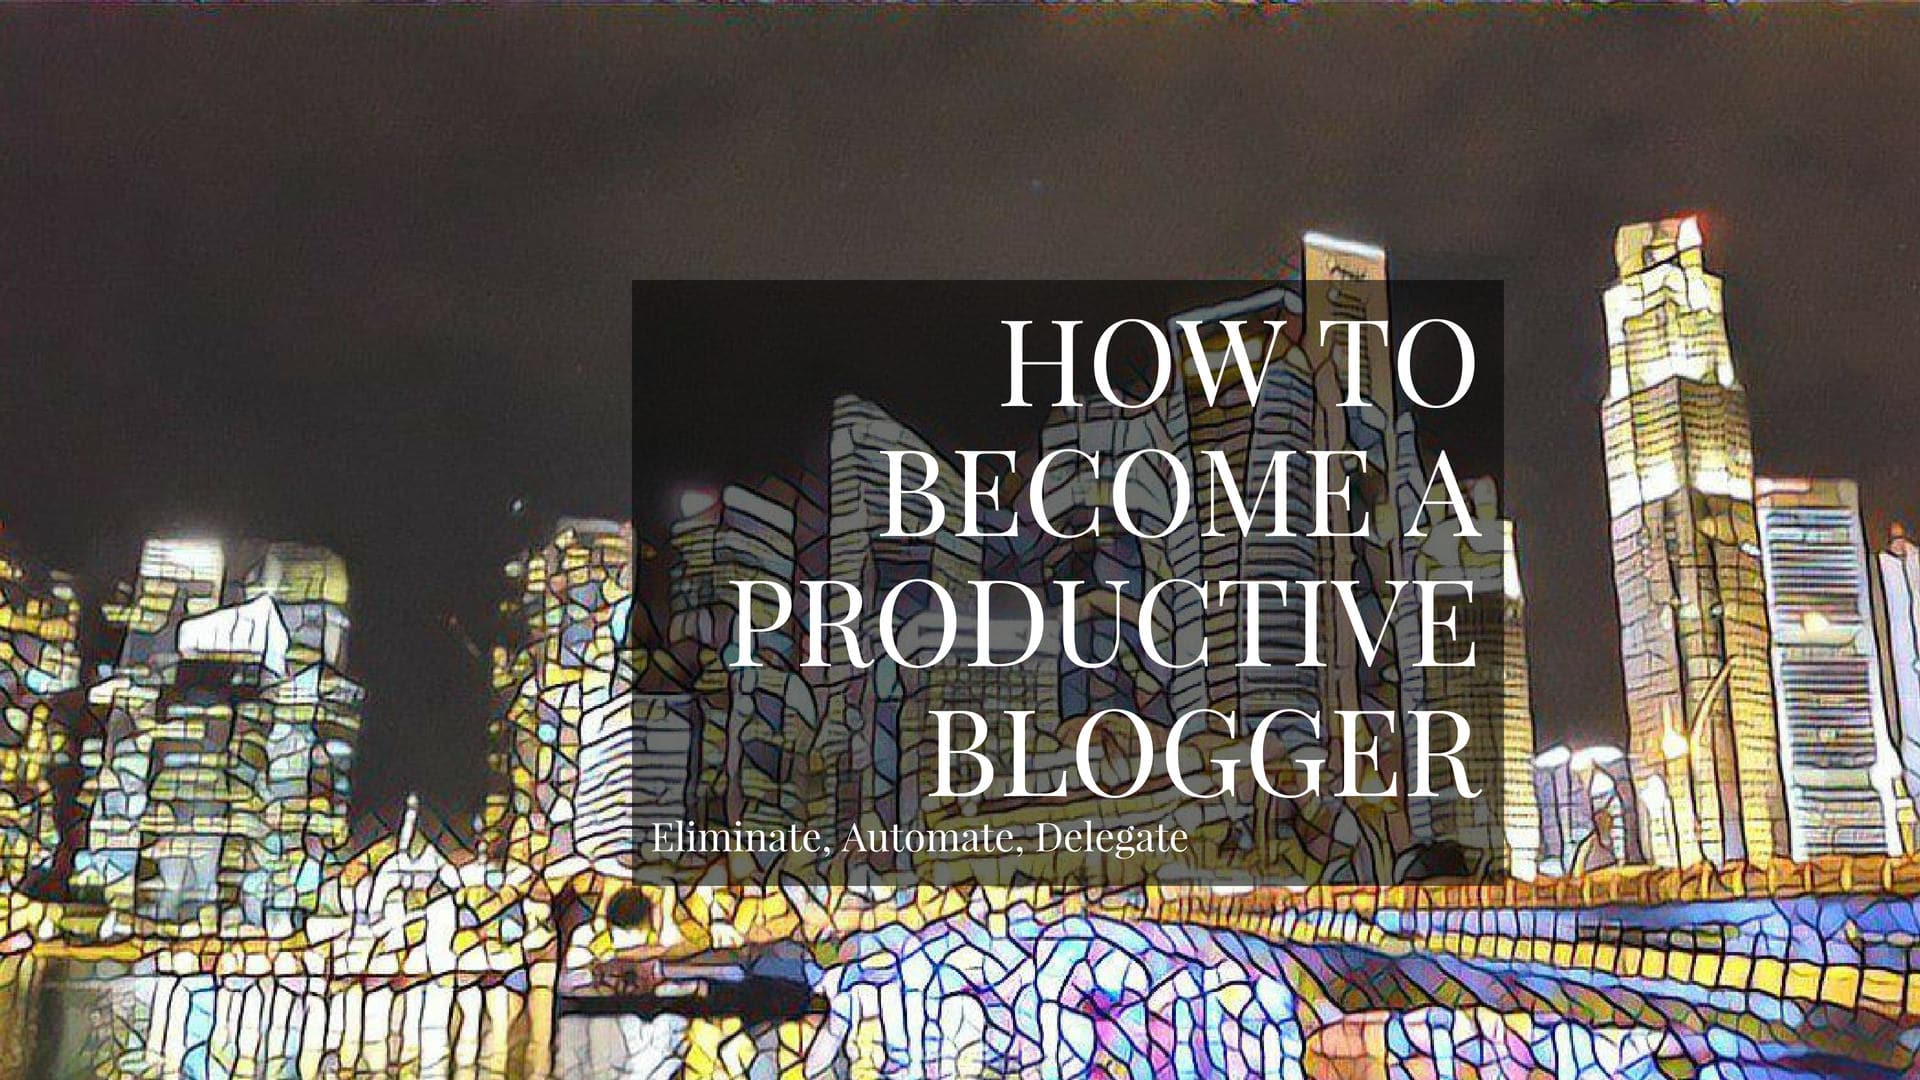 Today I will share with you advice and productivity tools that will make you a productive blogger